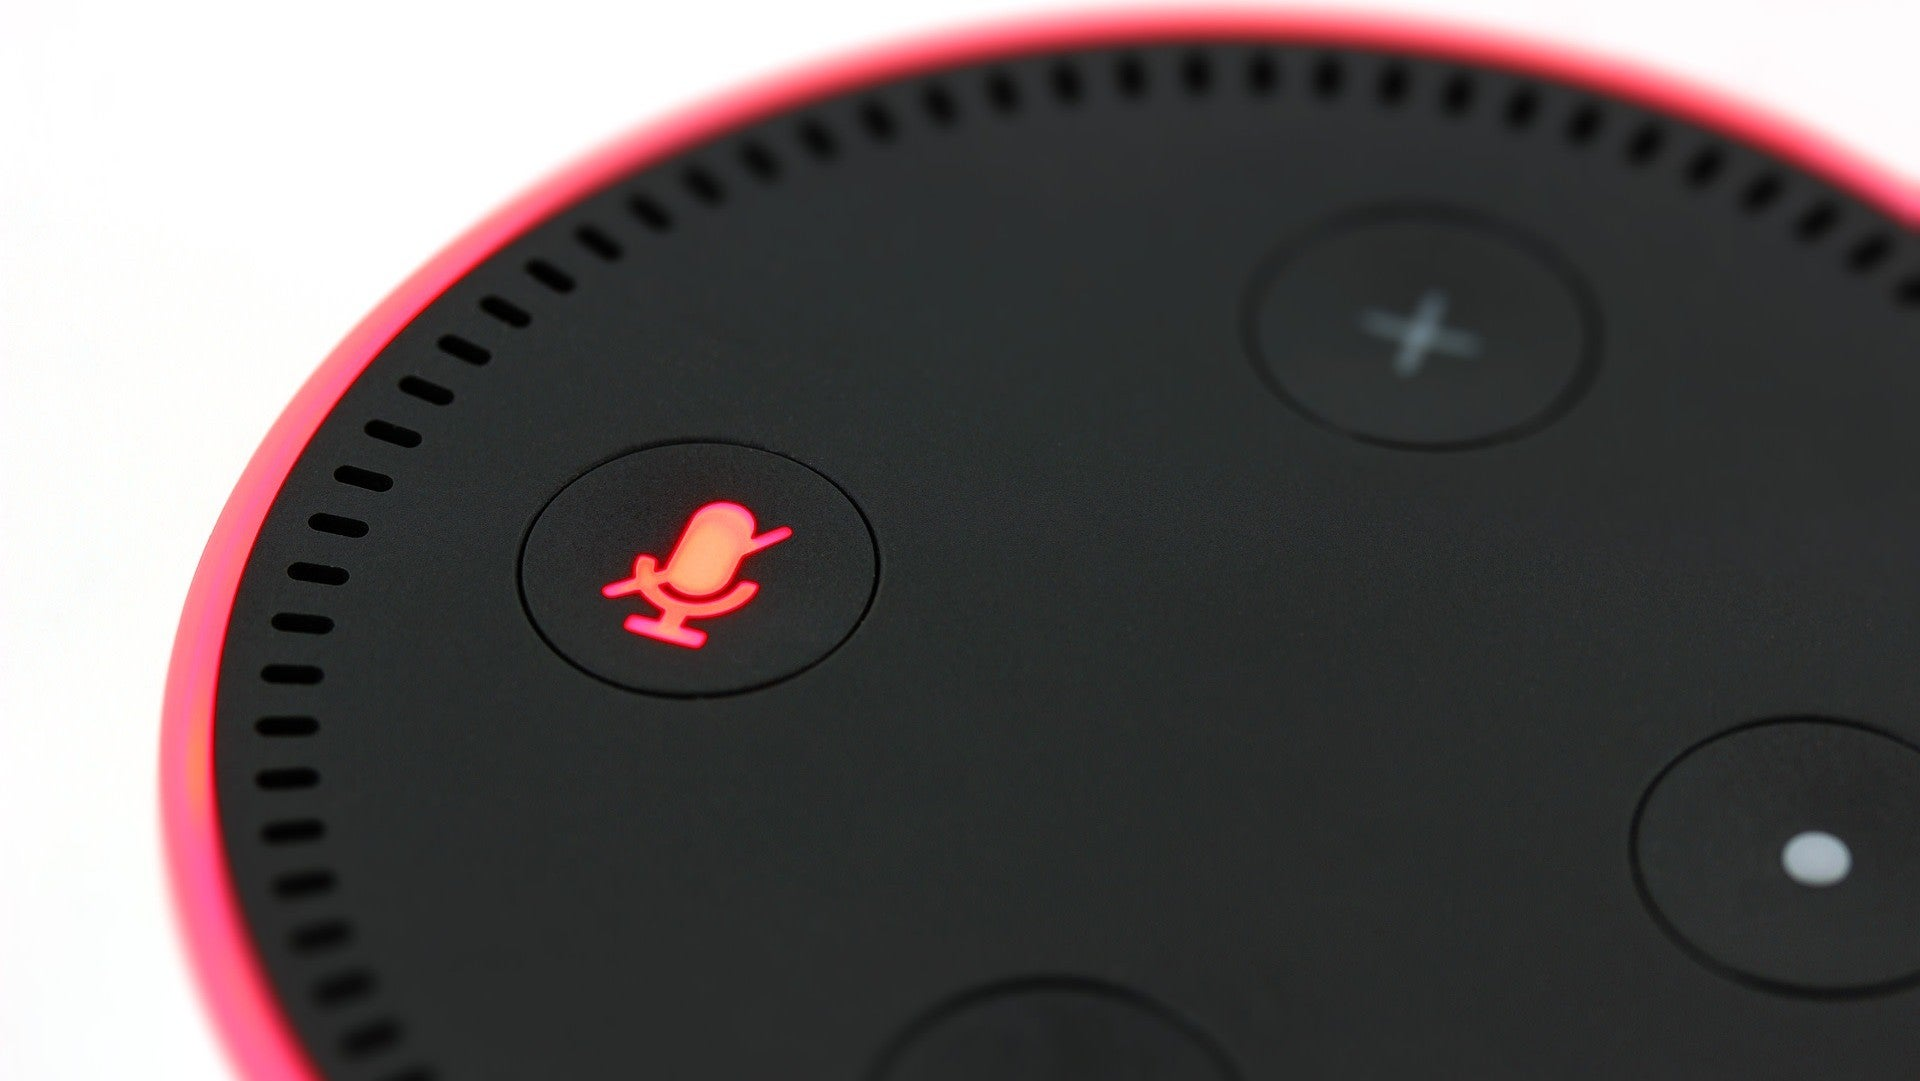 Don't Let Alexa, Siri, Or Google Assistant Auto-Dial Companies